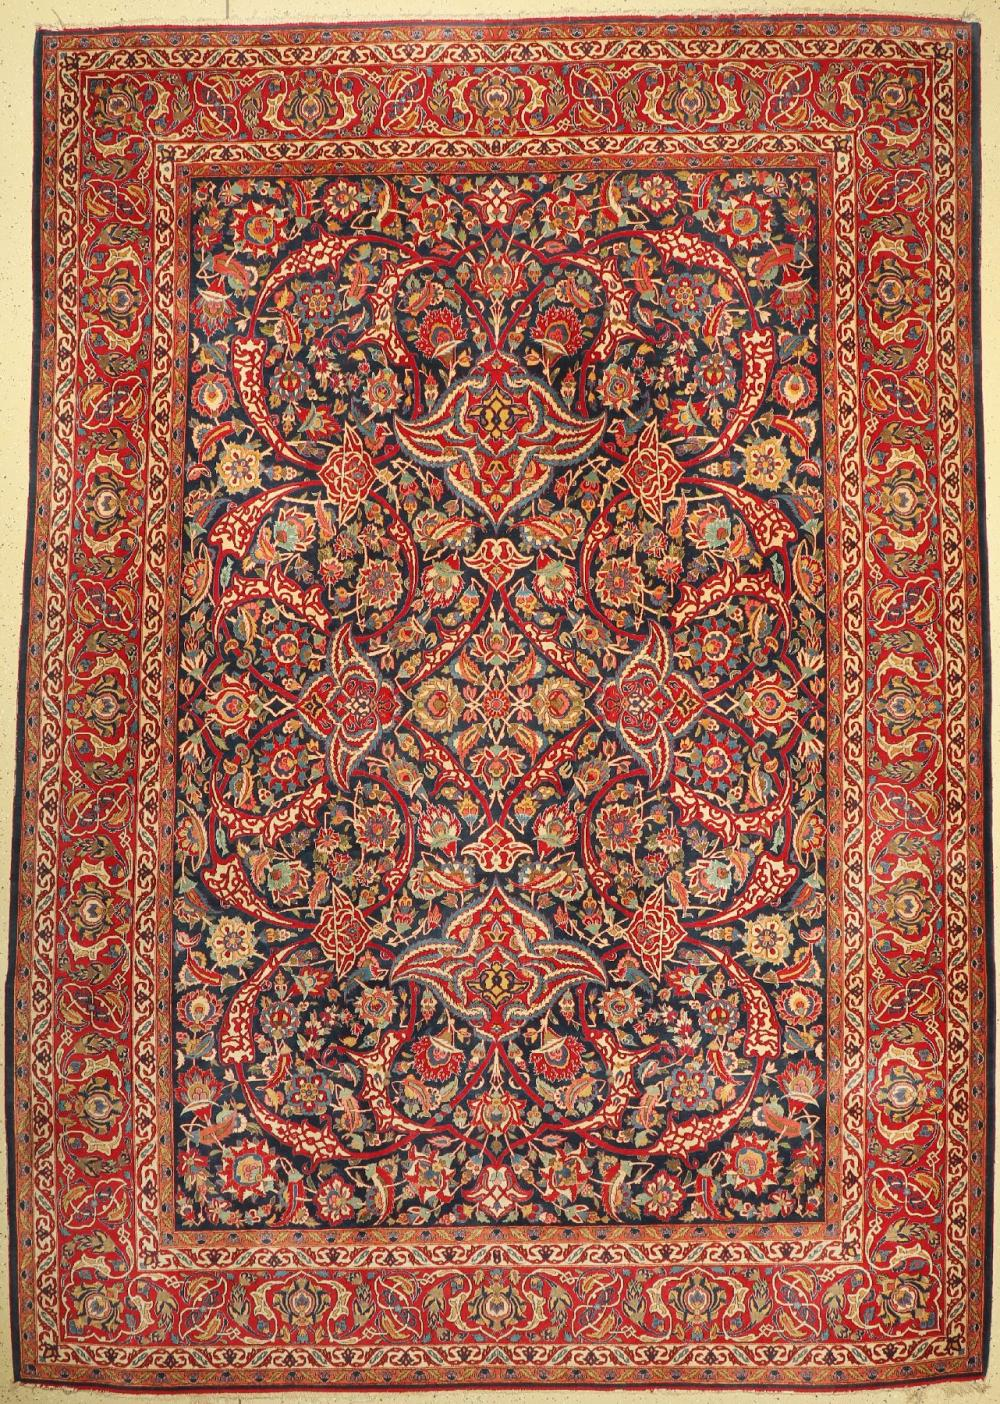 Fine Kashan , Persia, around 1920/1930 wool knotted on